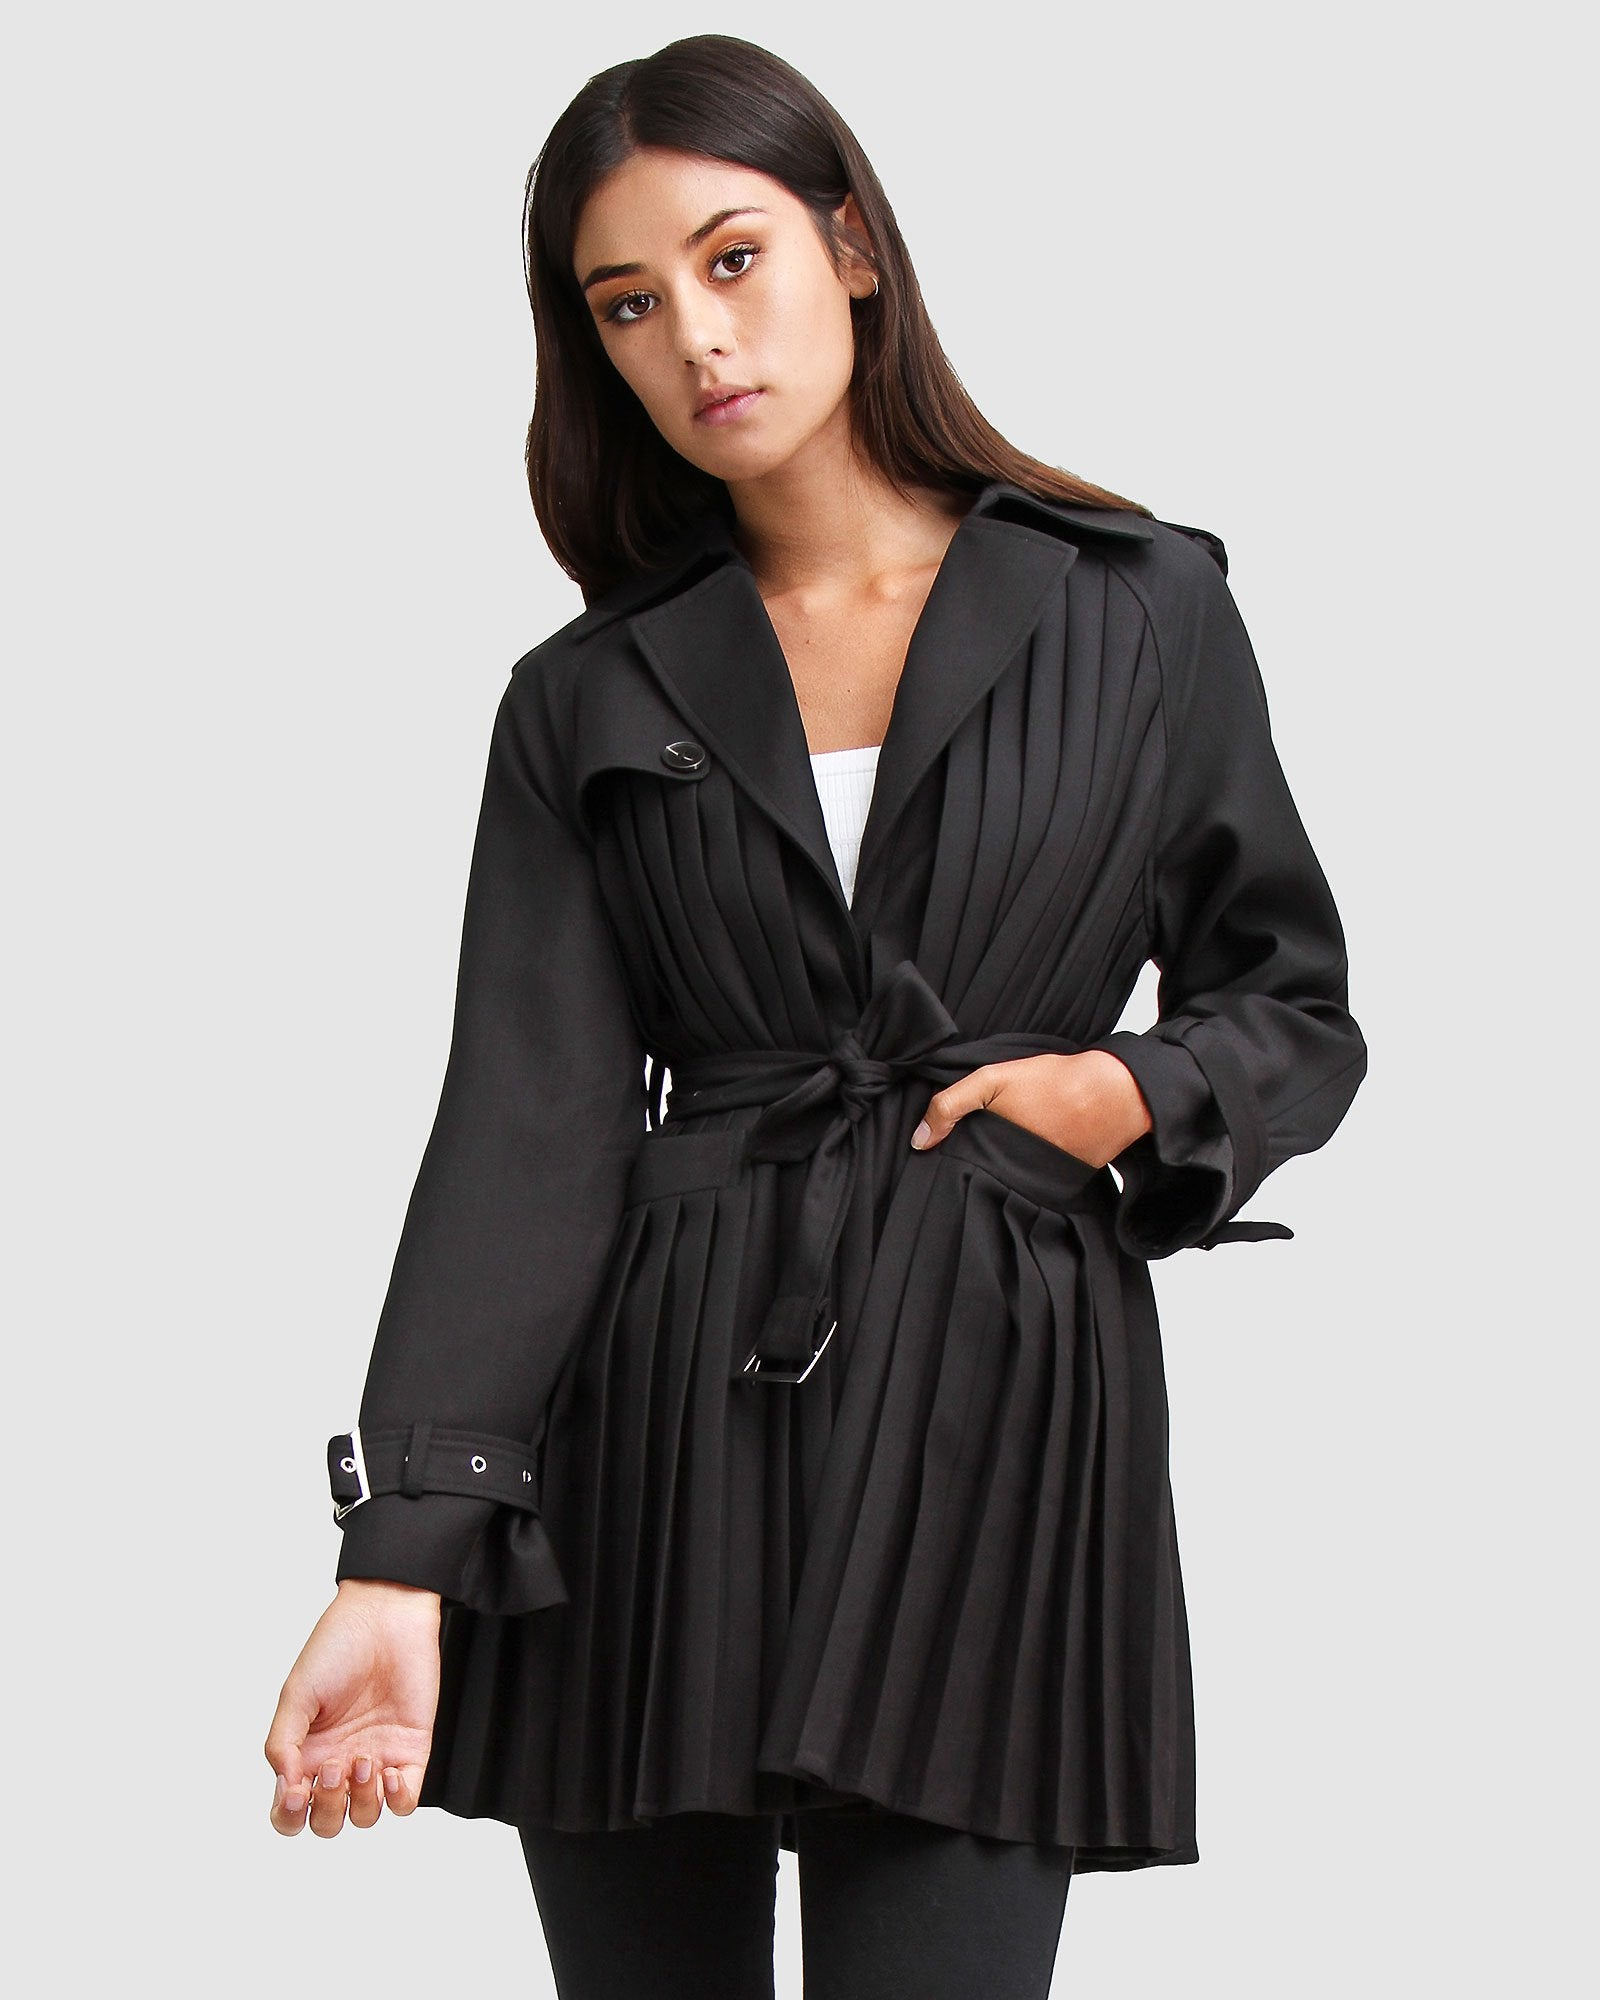 Wish You Were Mine Belted Jacket  - Black